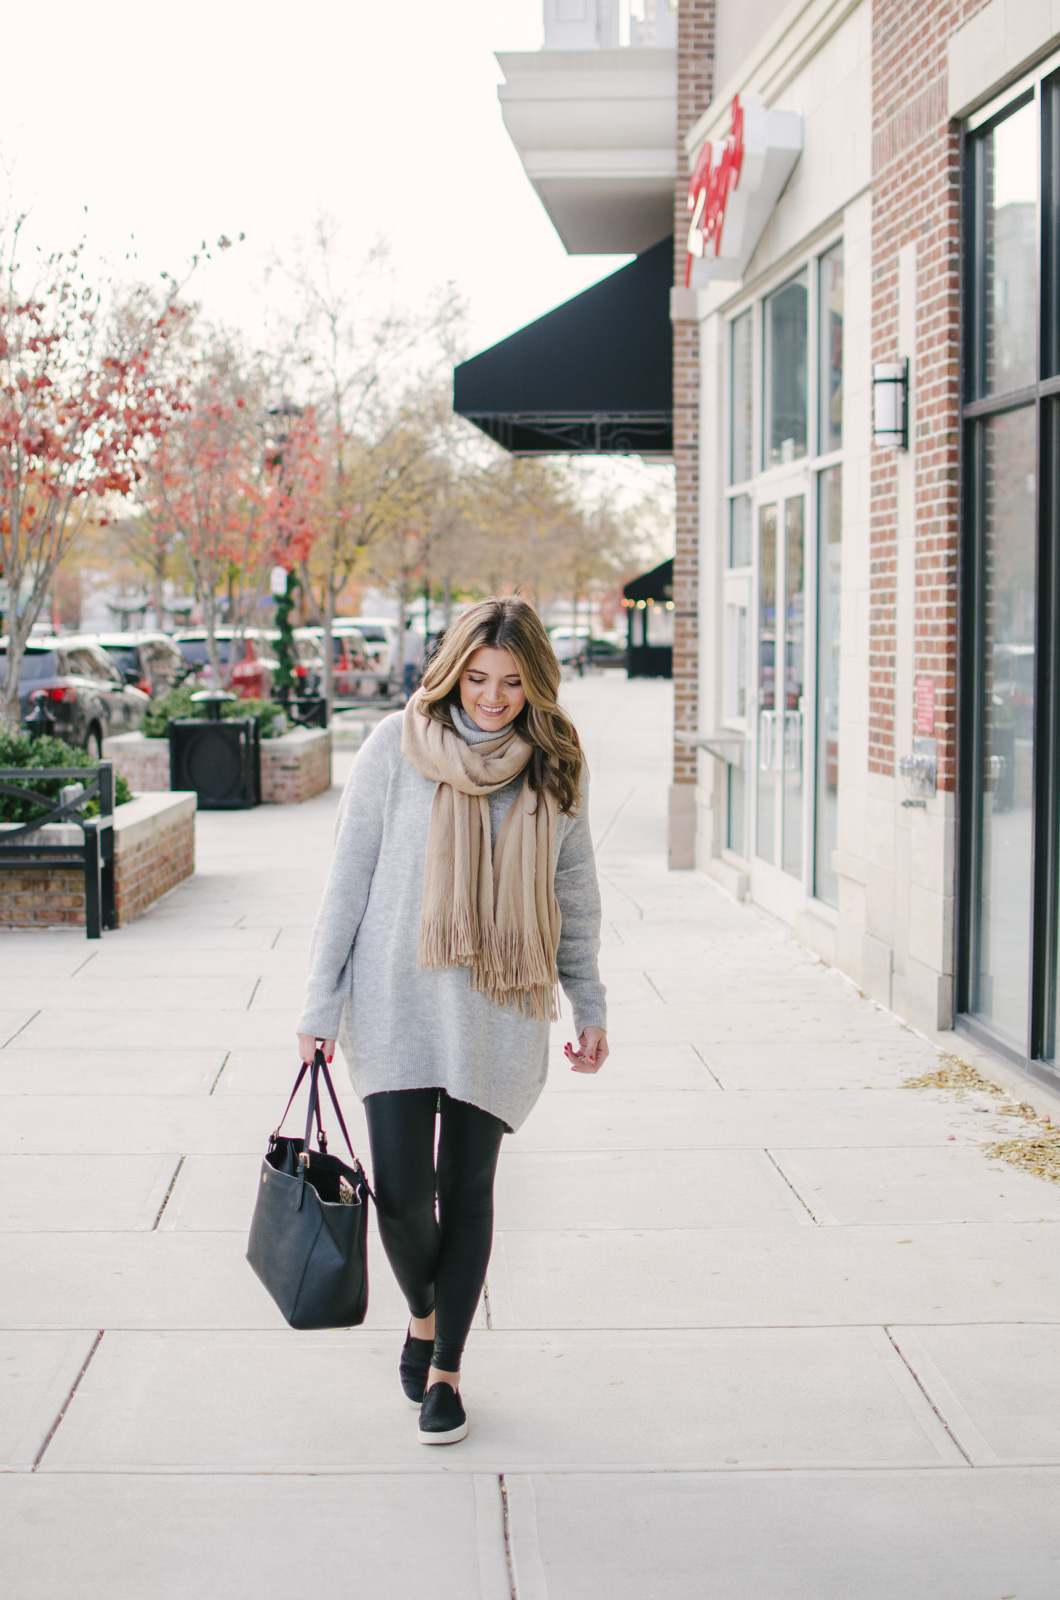 leggings outfit winter - tunic turtleneck with leggings | For more casual Winter outfits, click through to bylaurenm.com!